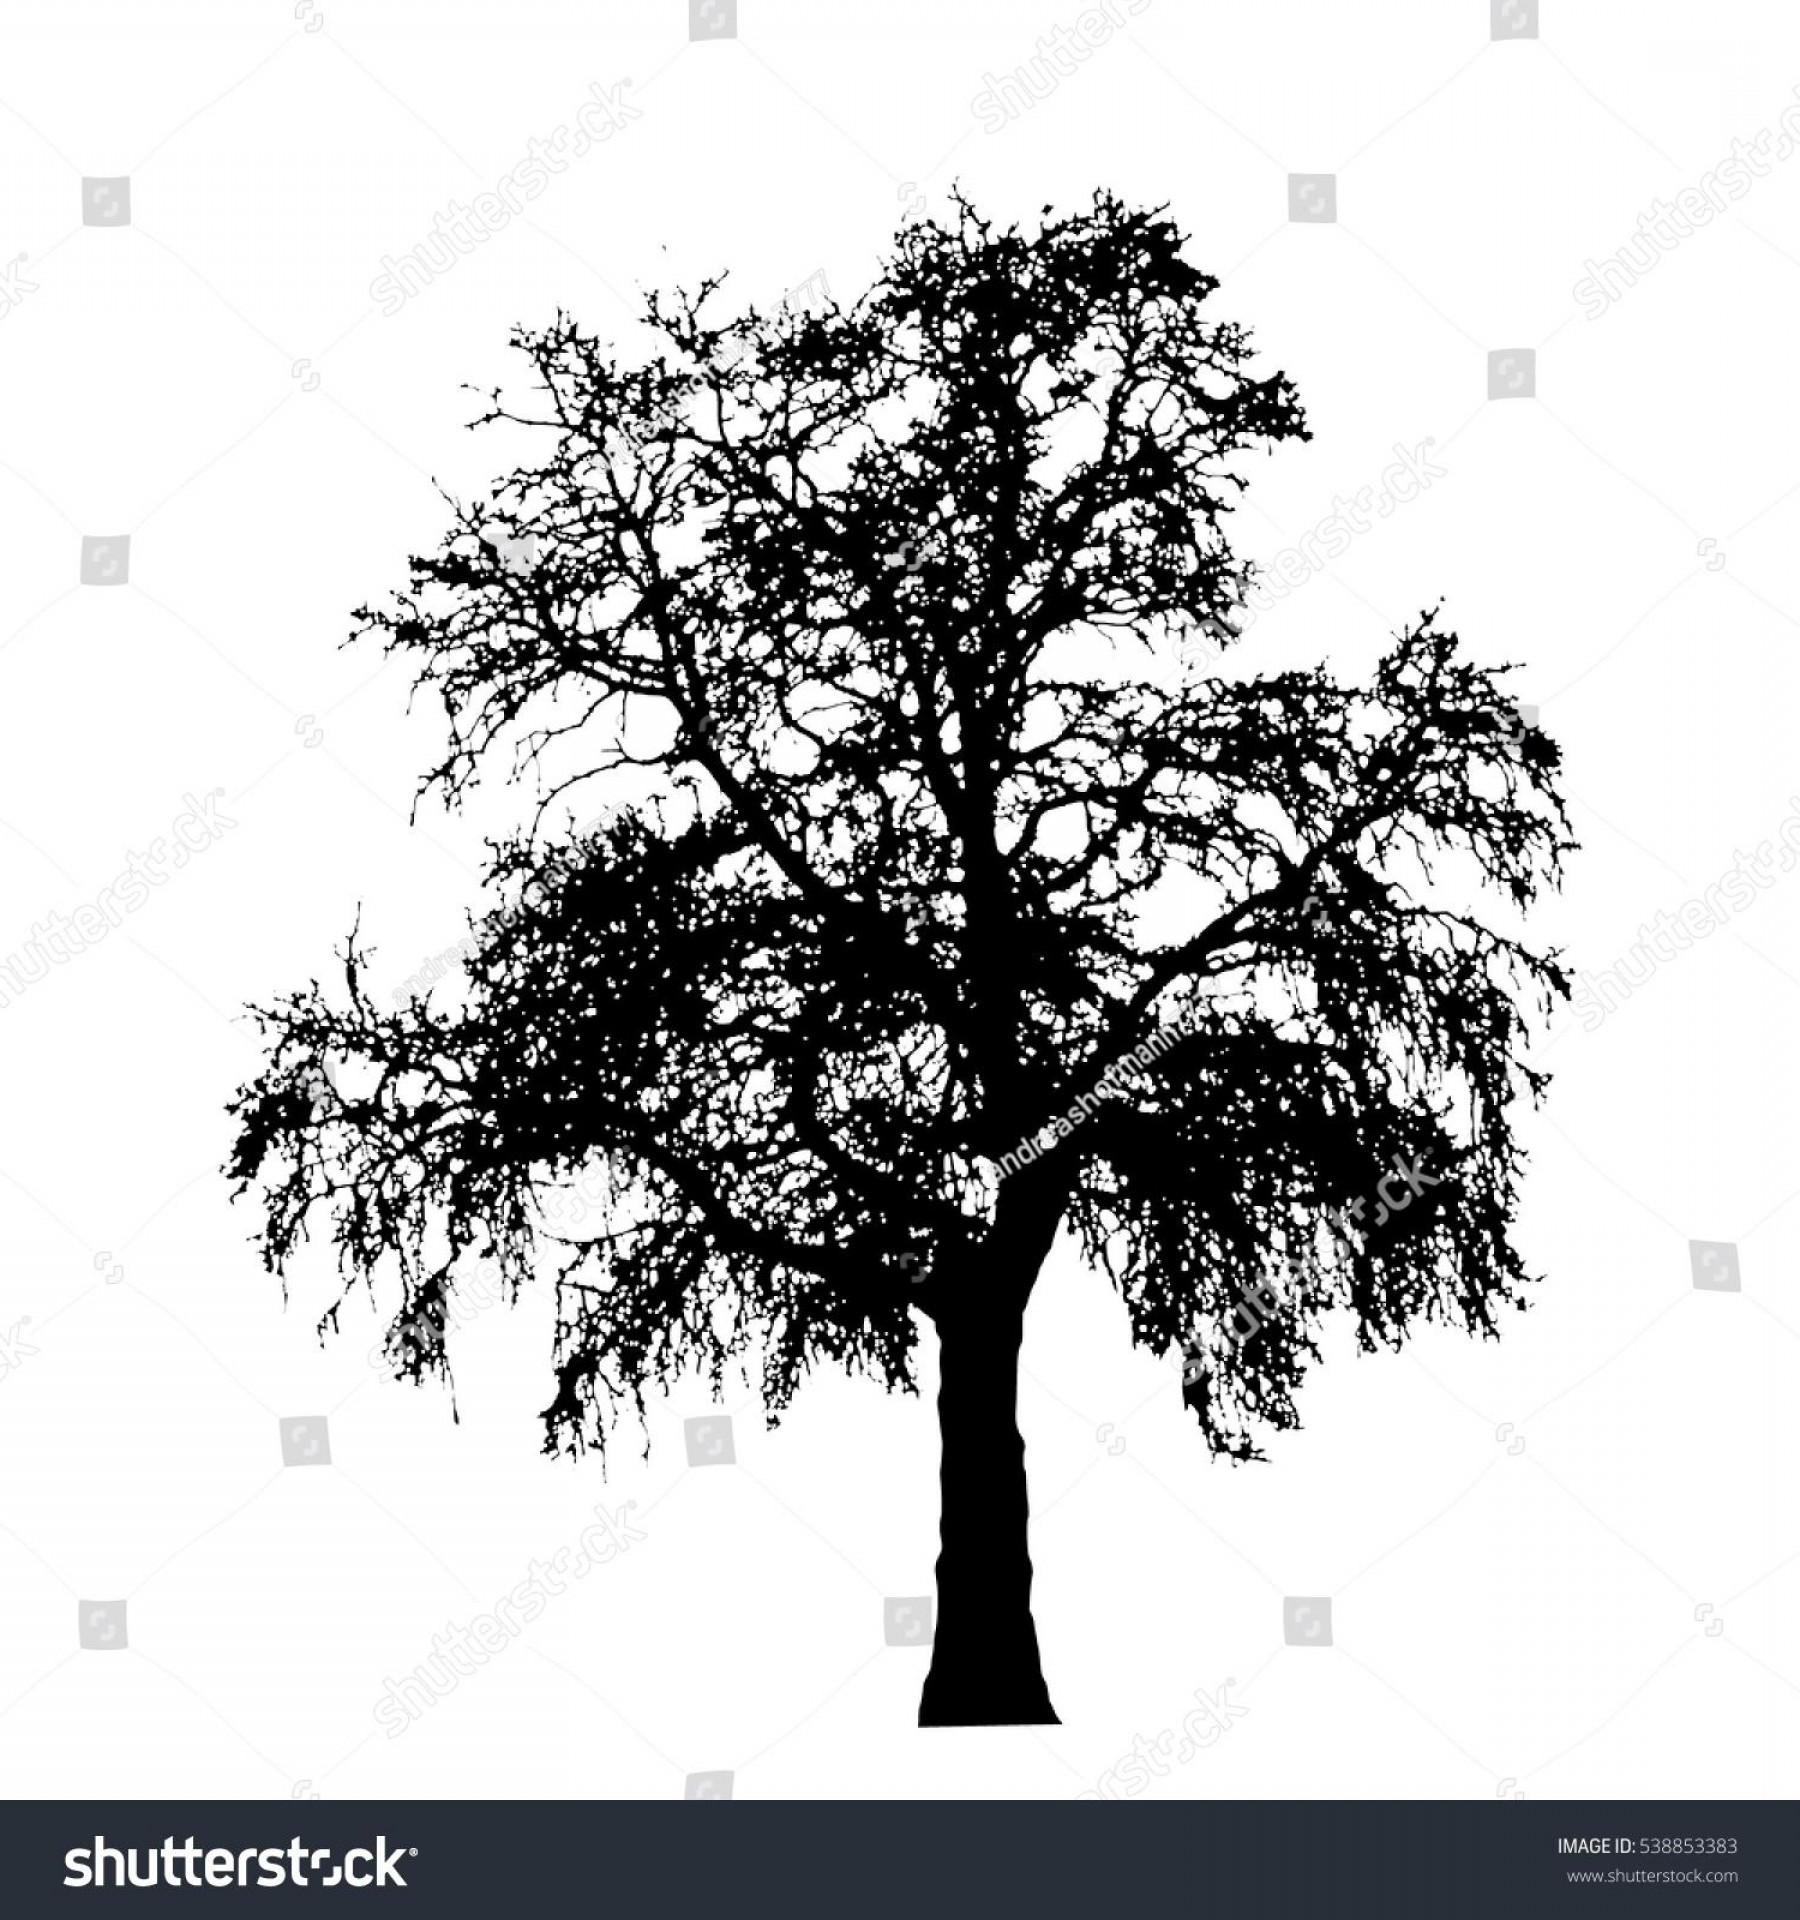 Oak Tree Silhouette Vector Graphics: Best Stock Vector Realistic Oak Tree Silhouette Illustration Eps Drawing